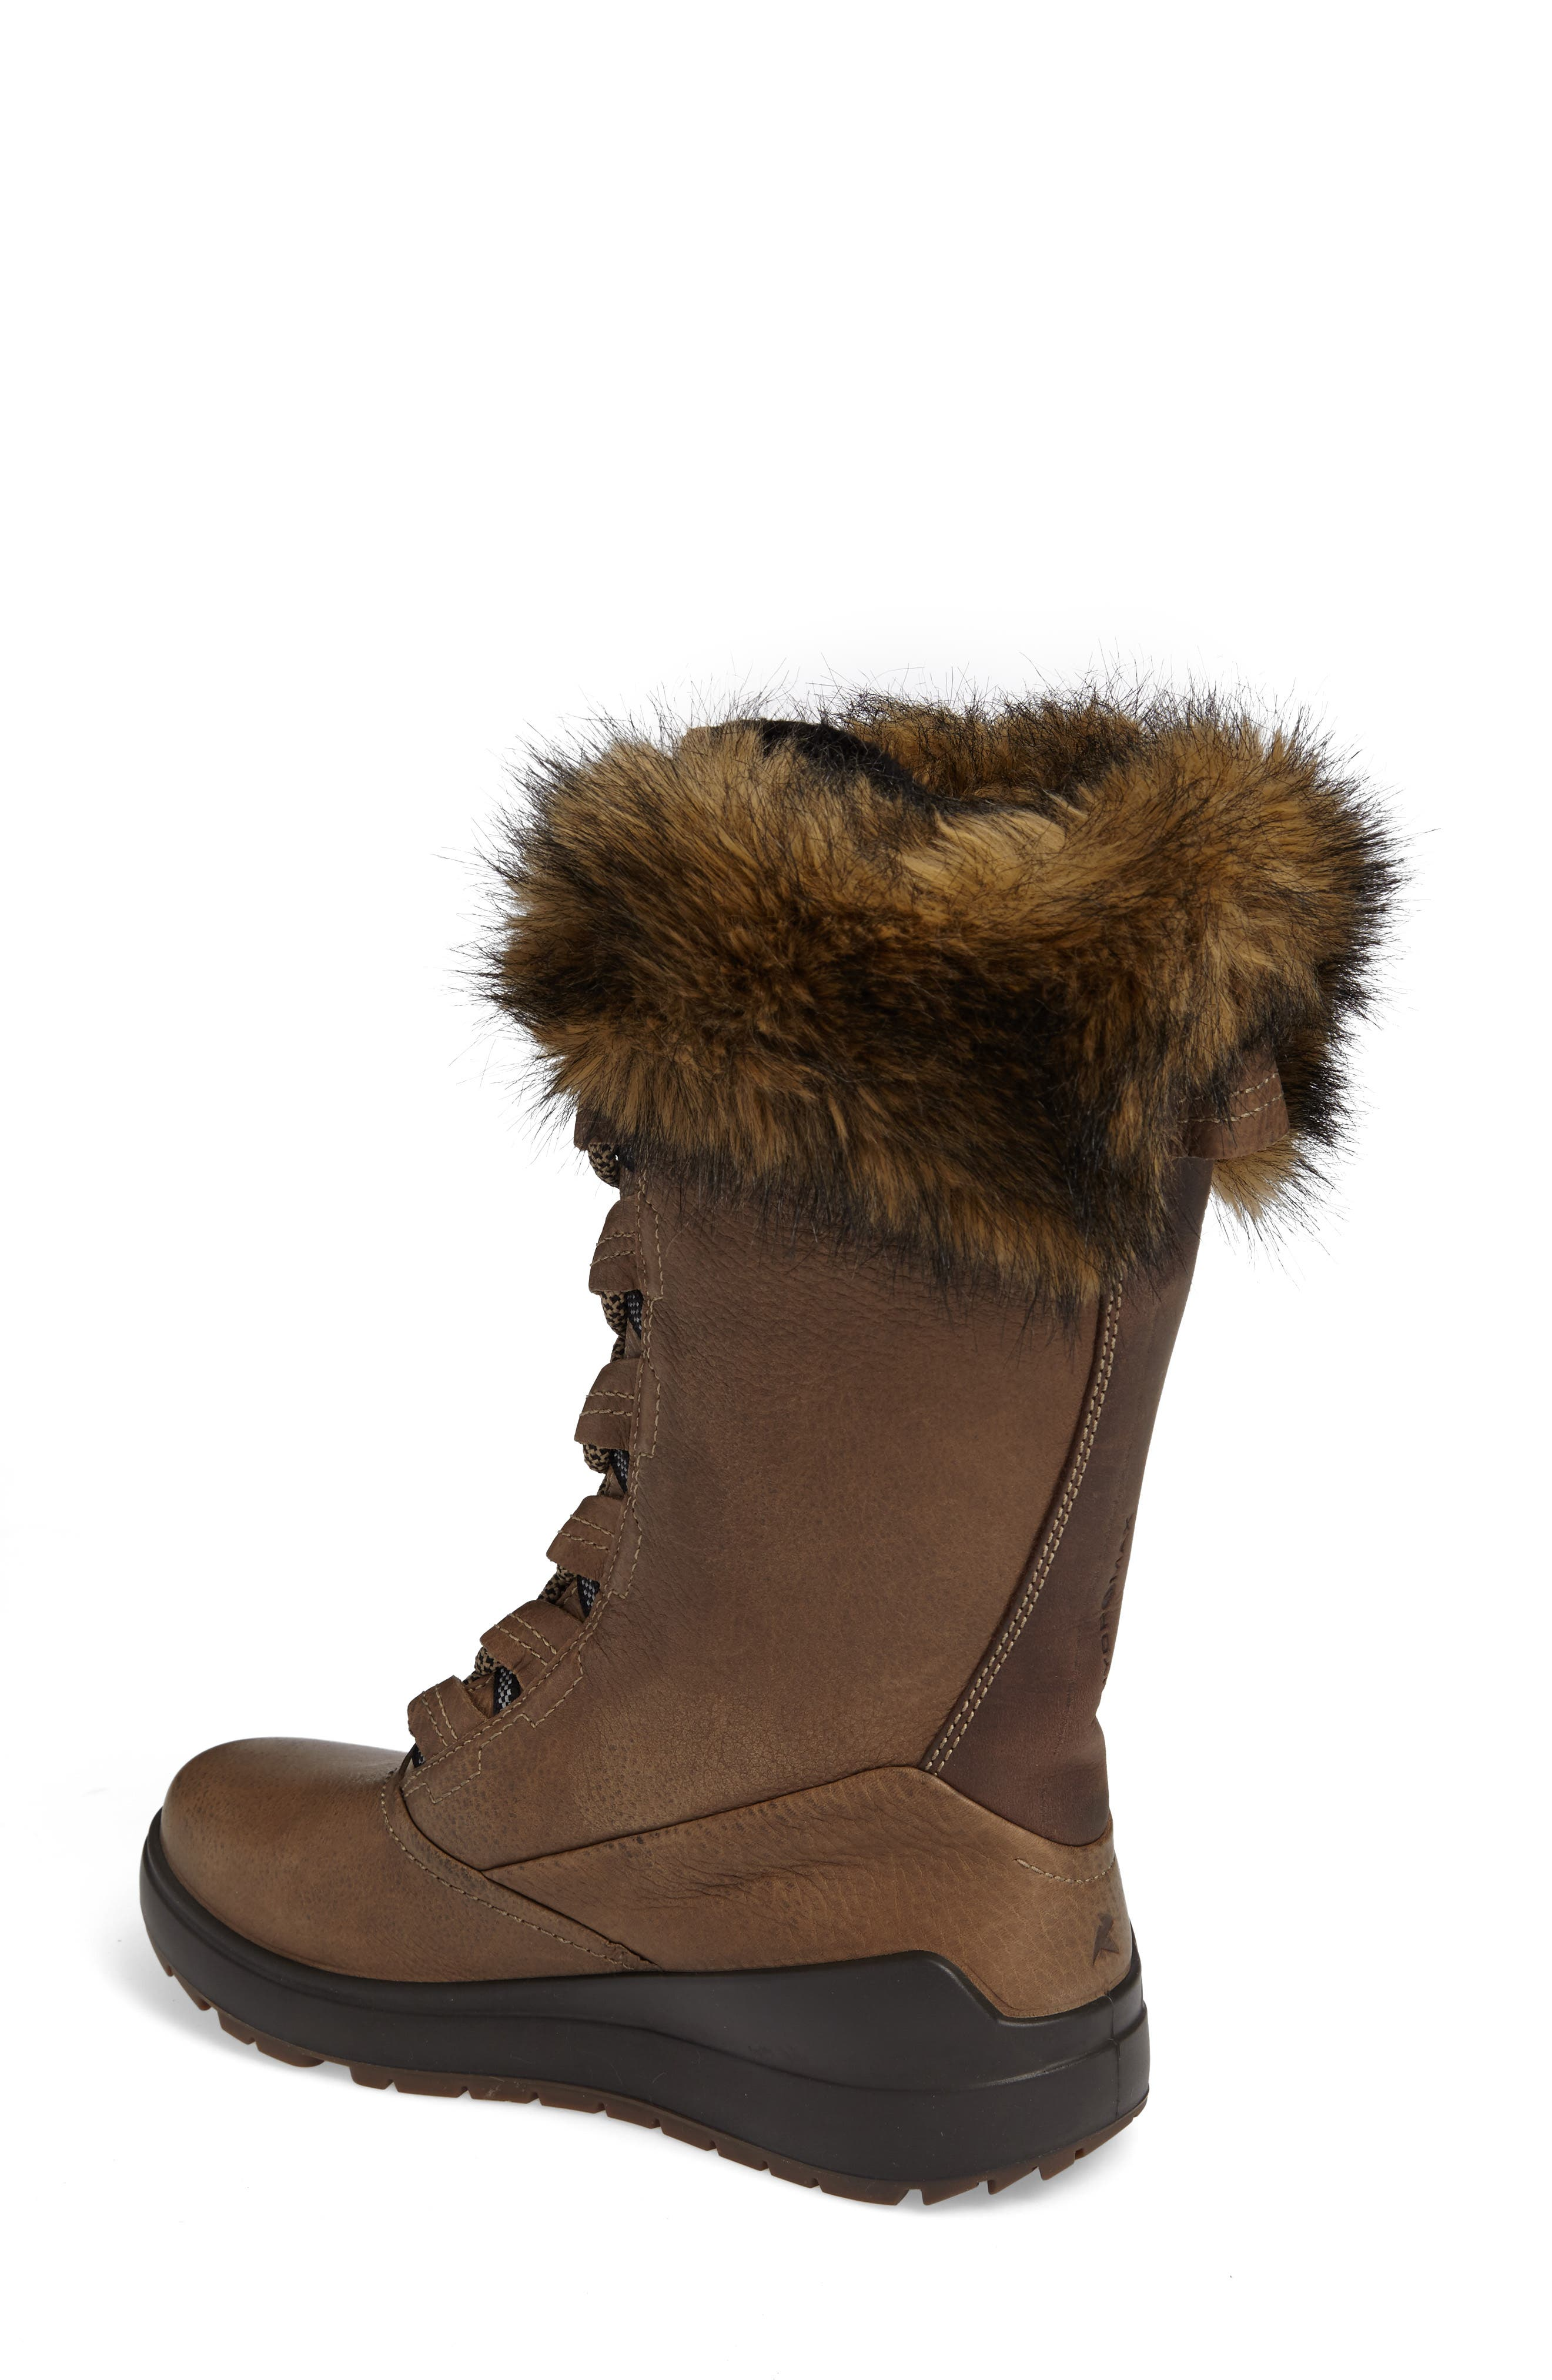 Noyce Siberia Hydromax Water Resistant Winter Boot with Faux Fur Trim,                             Alternate thumbnail 2, color,                             212